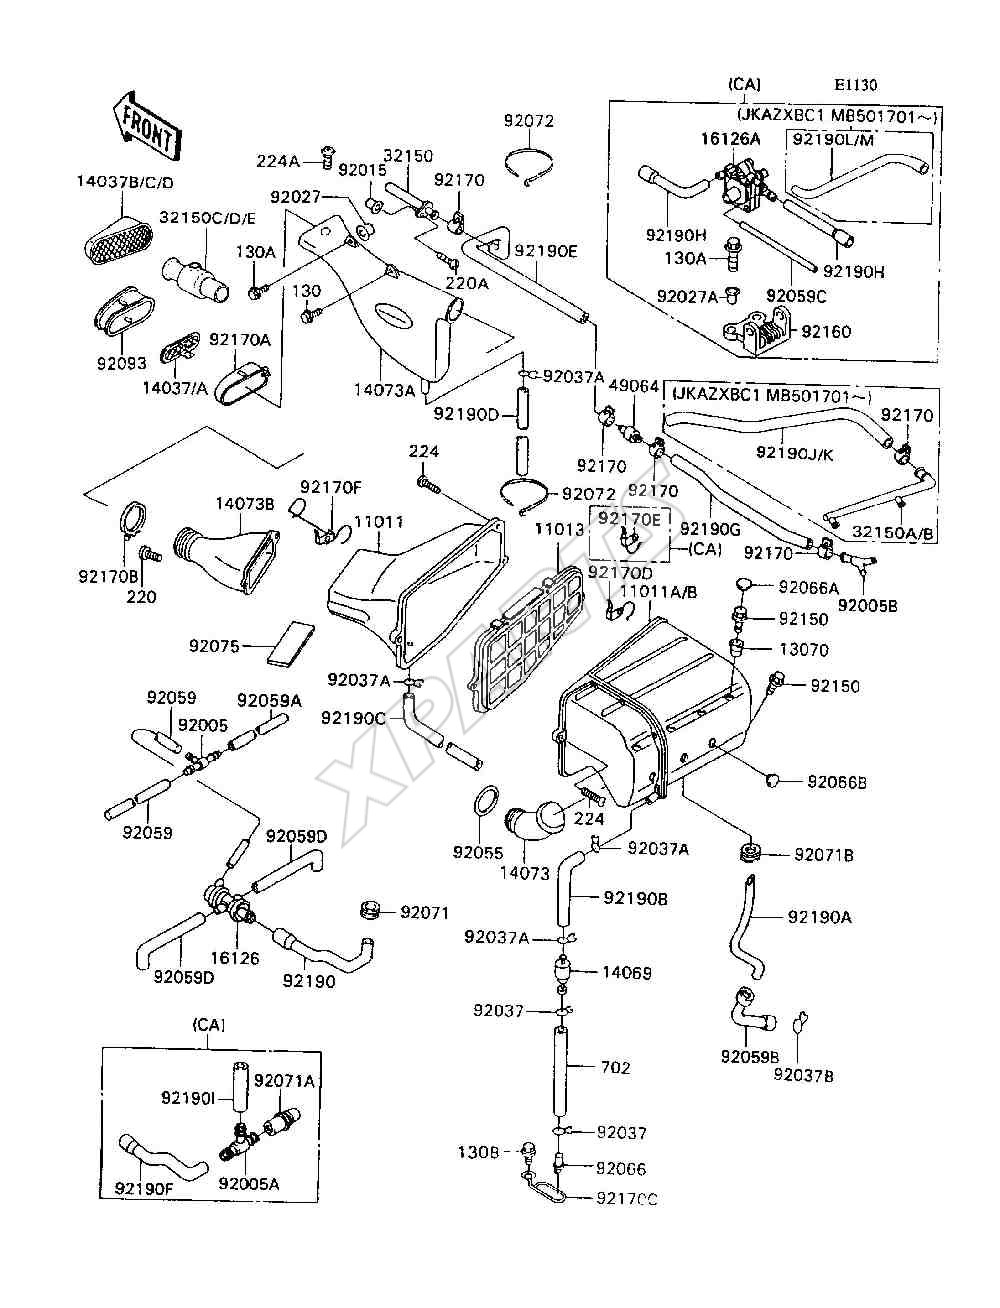 1973 1987 Chevy Gmc Engine Wire Harness Loom Sizes additionally Fog Light Wiring Kit likewise Dodge Ram 1500 Wiring Loom in addition 99 Zx 11 Wiring Diagram in addition Automotive Engine Wiring Harness. on automotive wiring harness loom